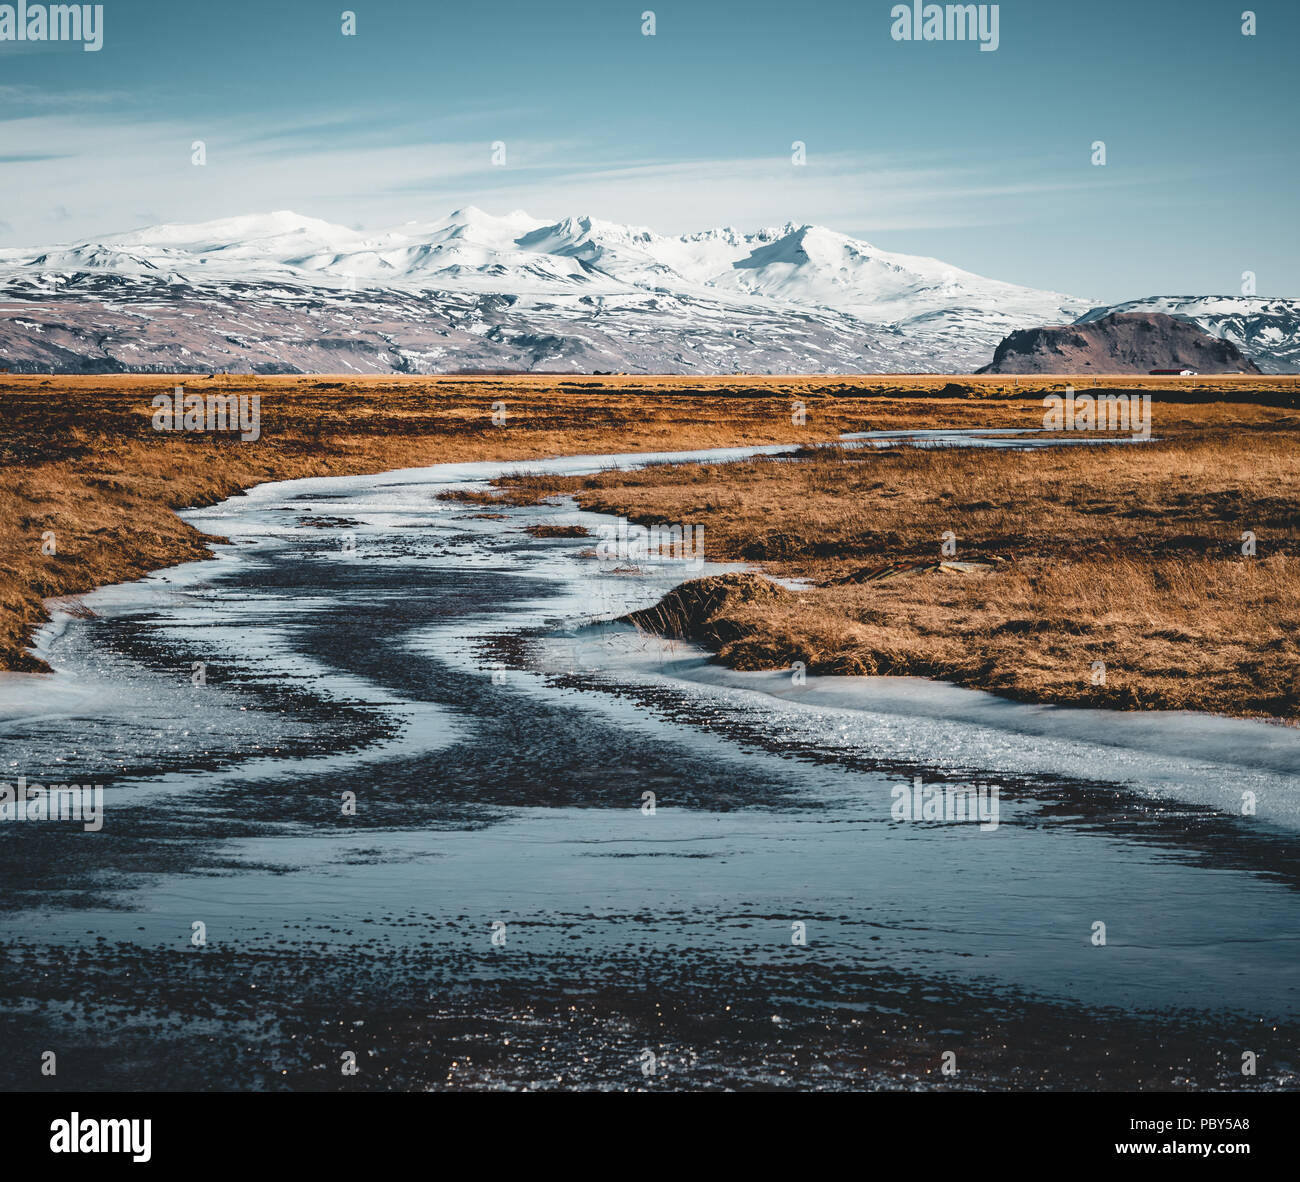 Iceland typical mountain winter scene with grass in foreground and massive mountain in background. - Stock Image